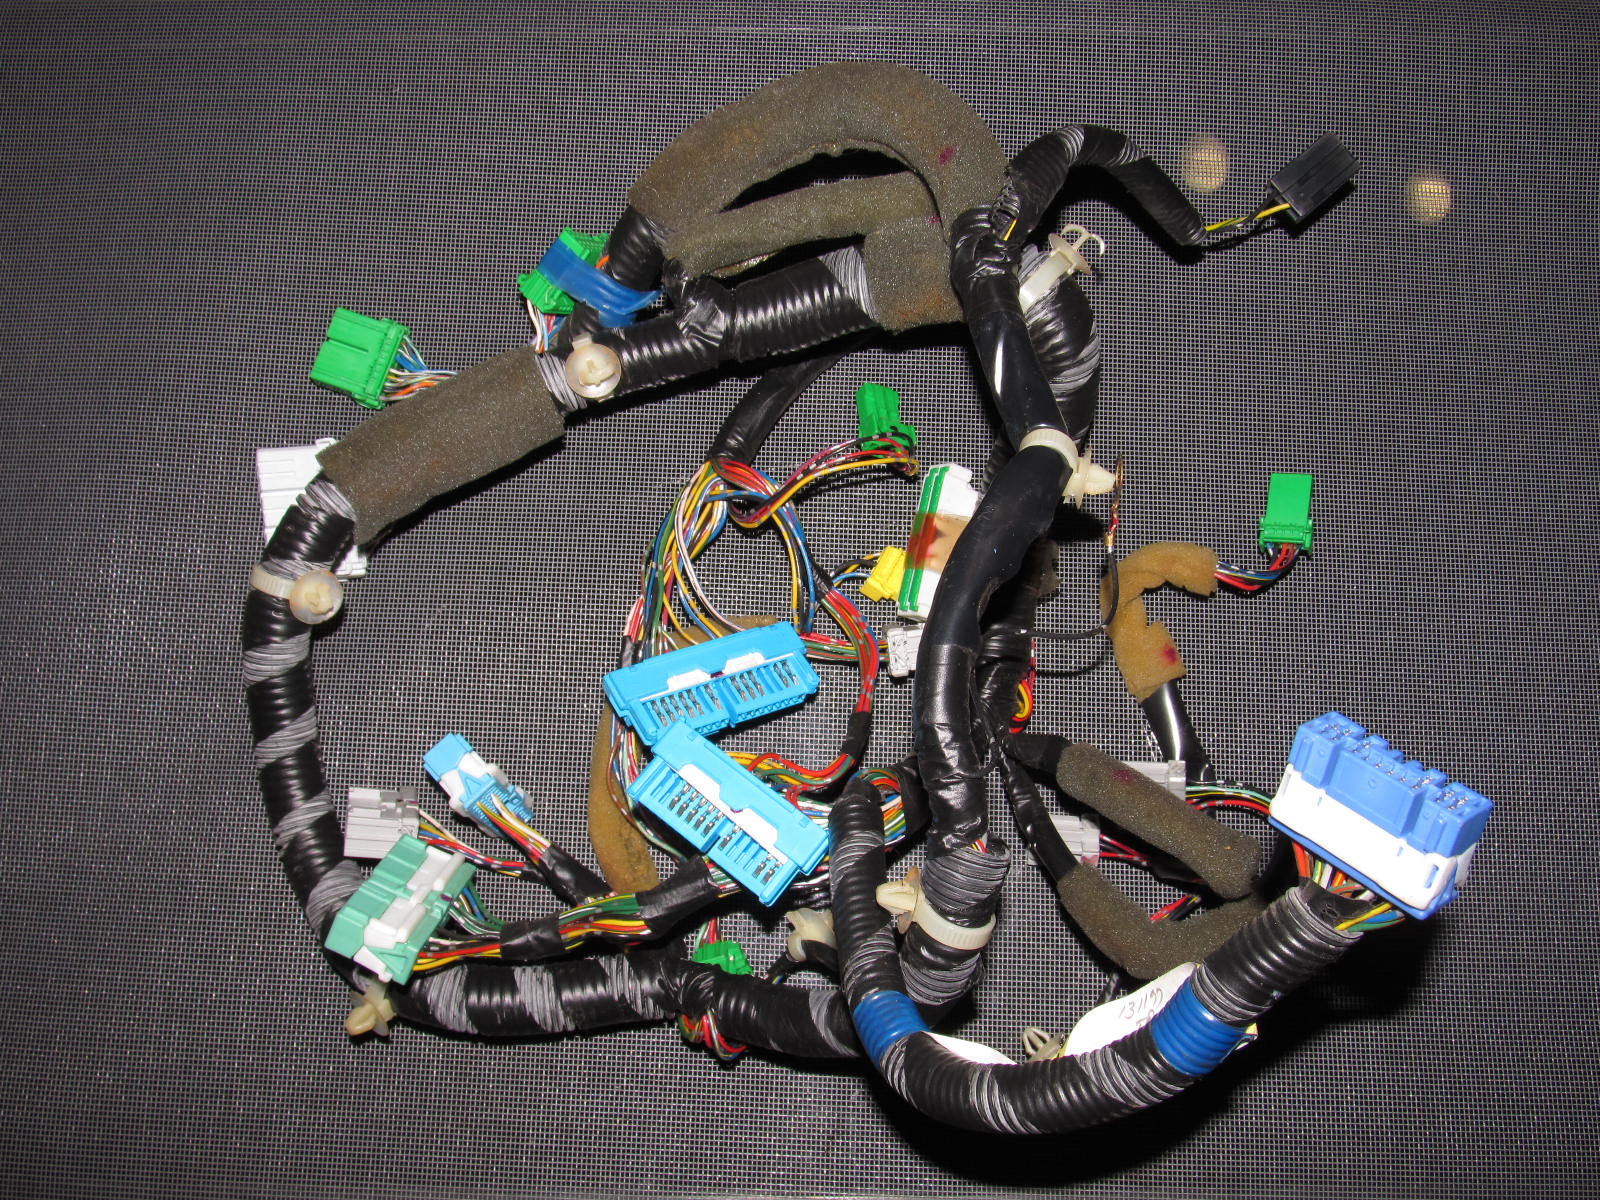 1996 honda civic engine wiring harness diagram 1996 97 civic engine wiring harness diagram jodebal com on 1996 honda civic engine wiring harness diagram